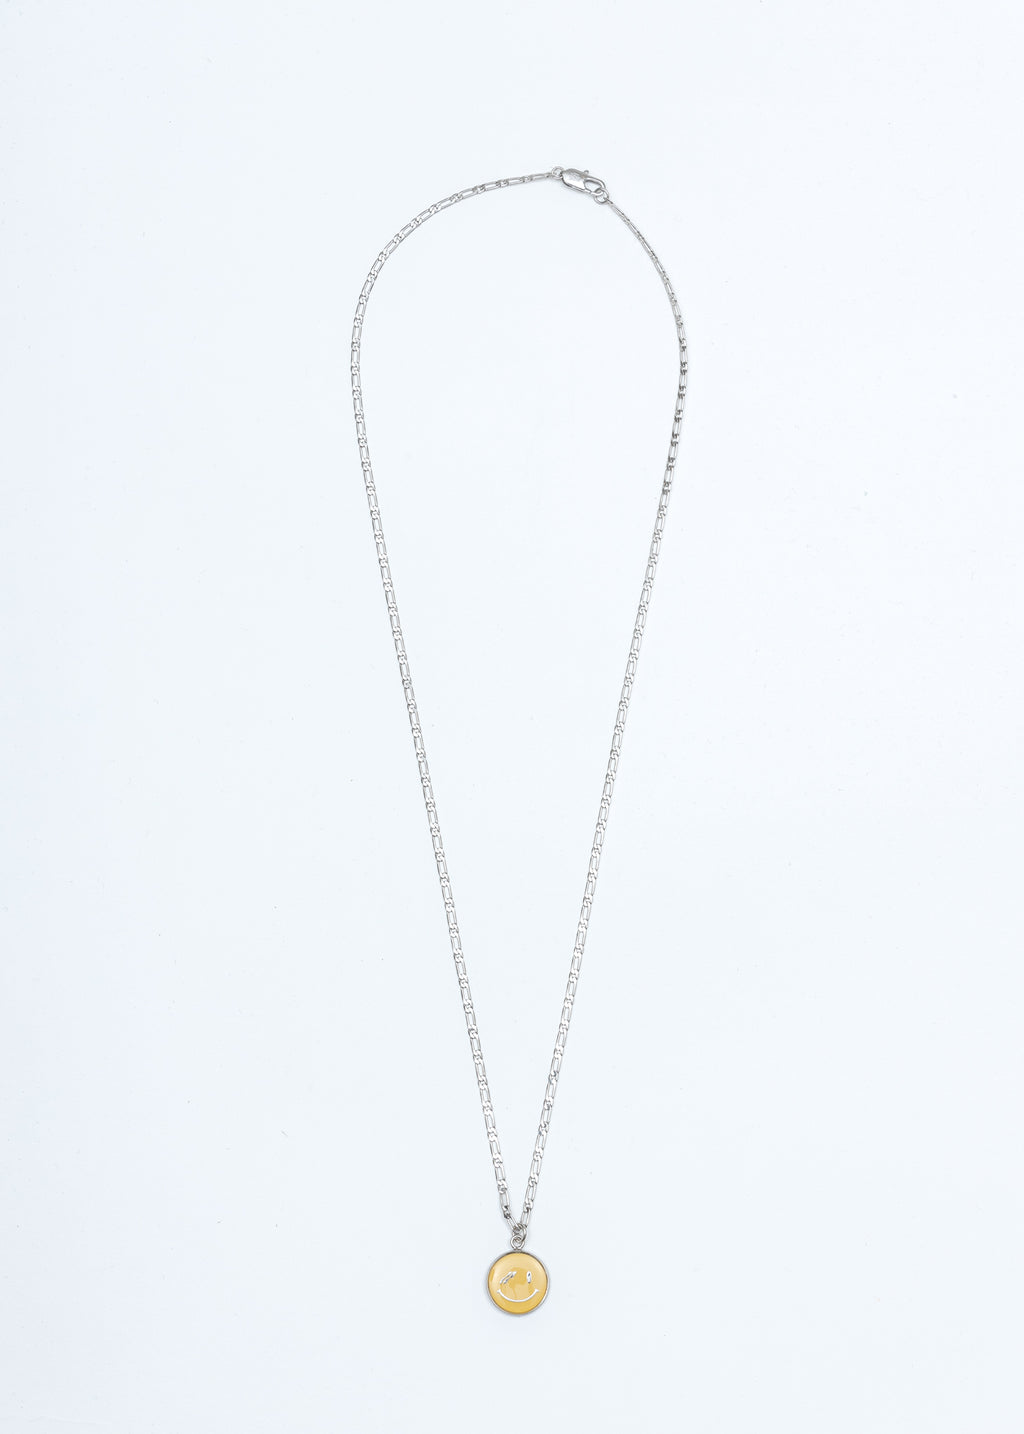 Silver We11done Smile Necklace